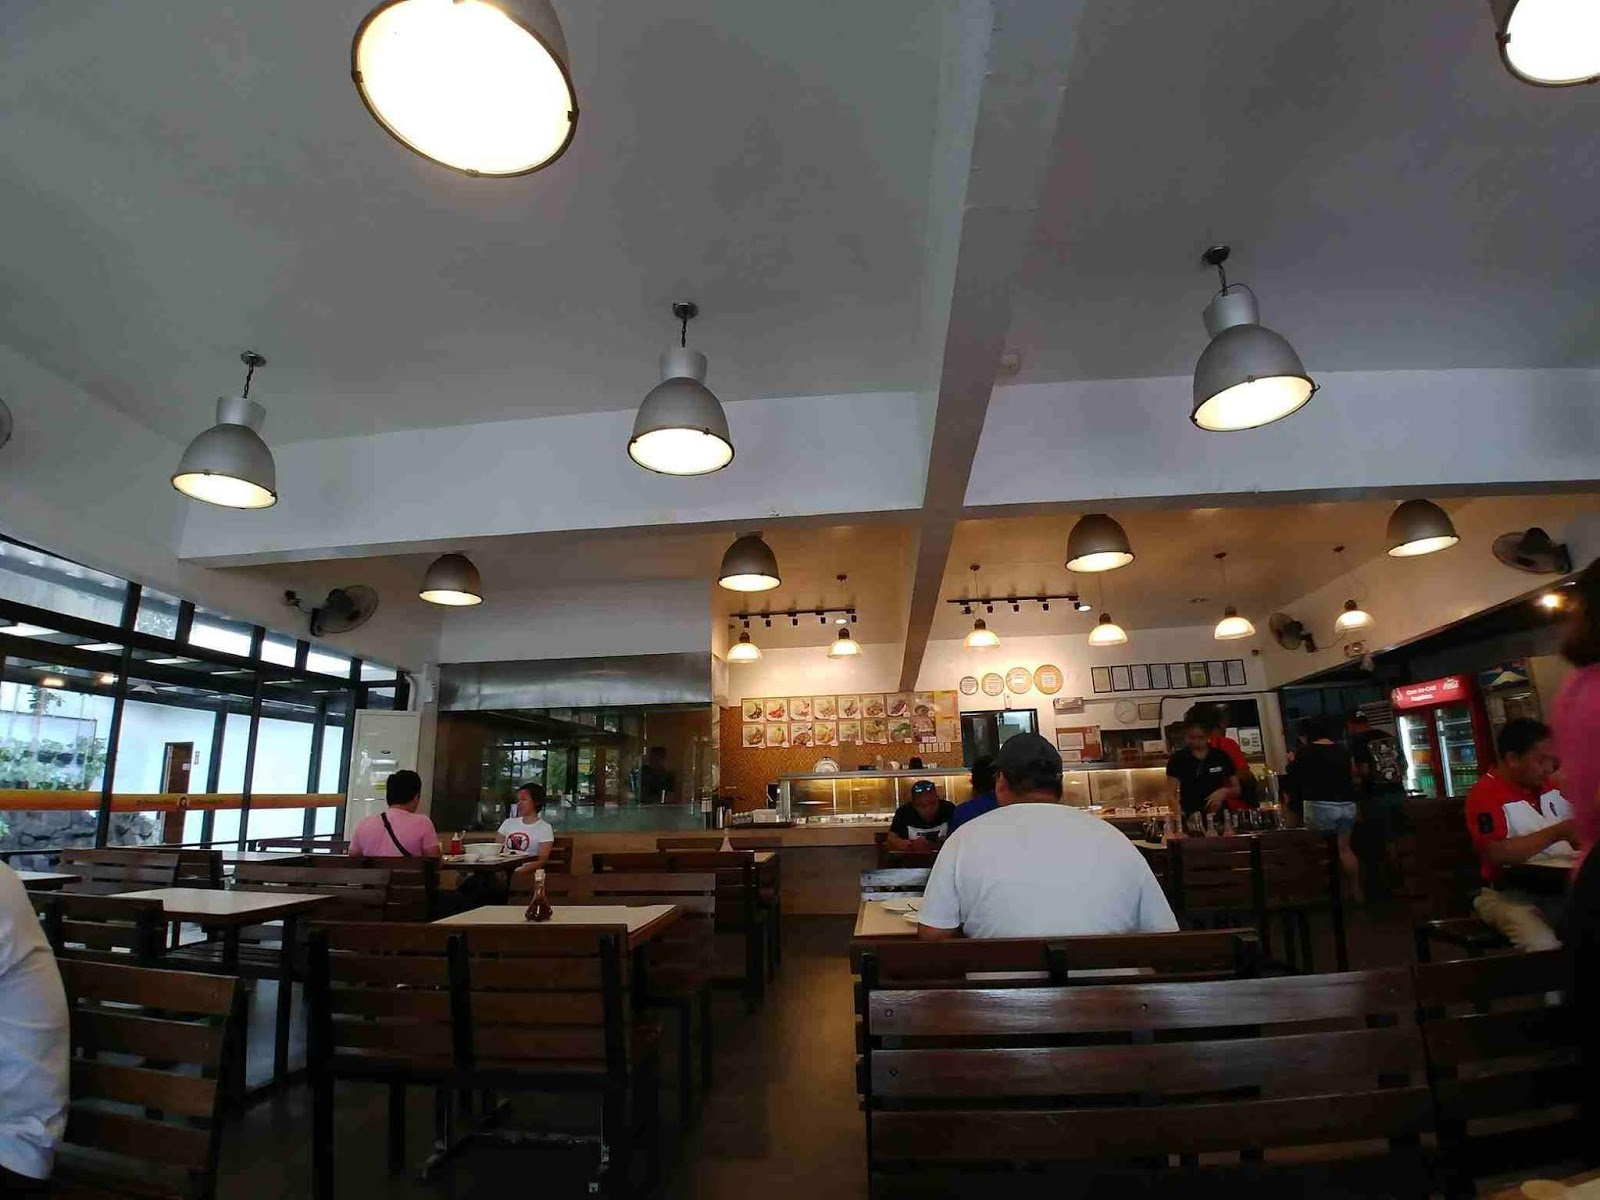 Busy interiors of a Tapsi ni Vivian branch with diners occupying tables